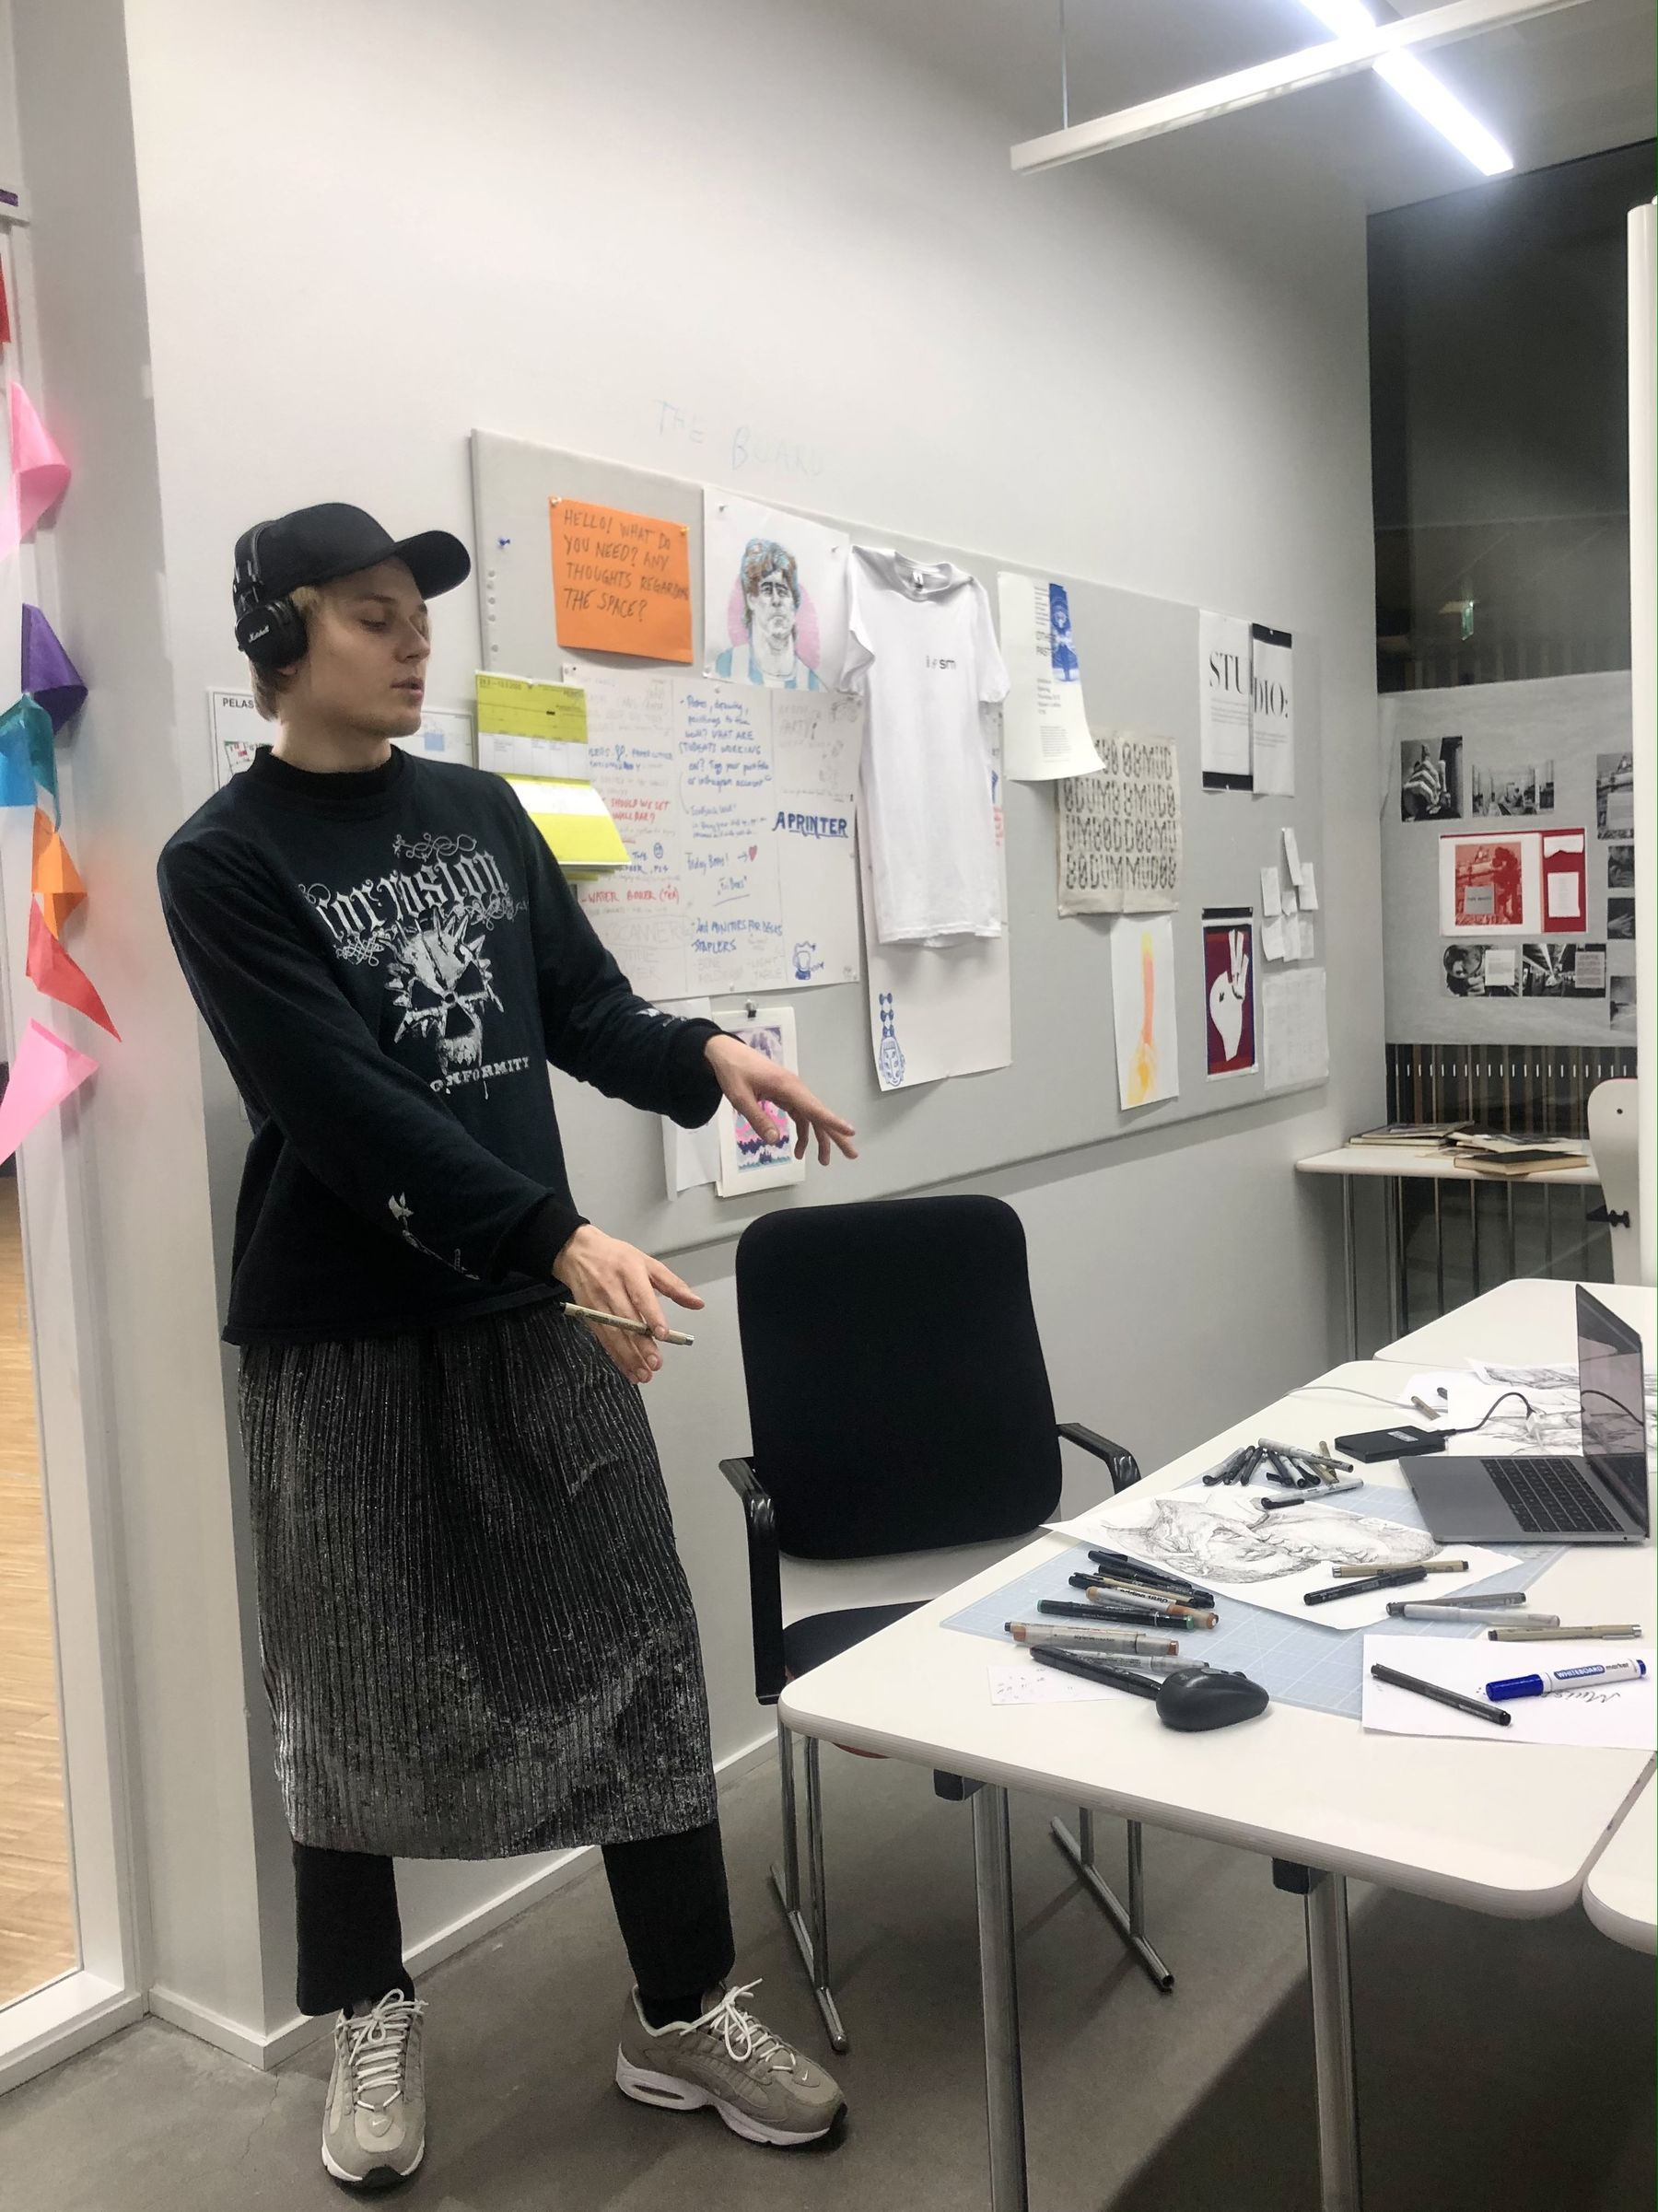 Artist standing in work room